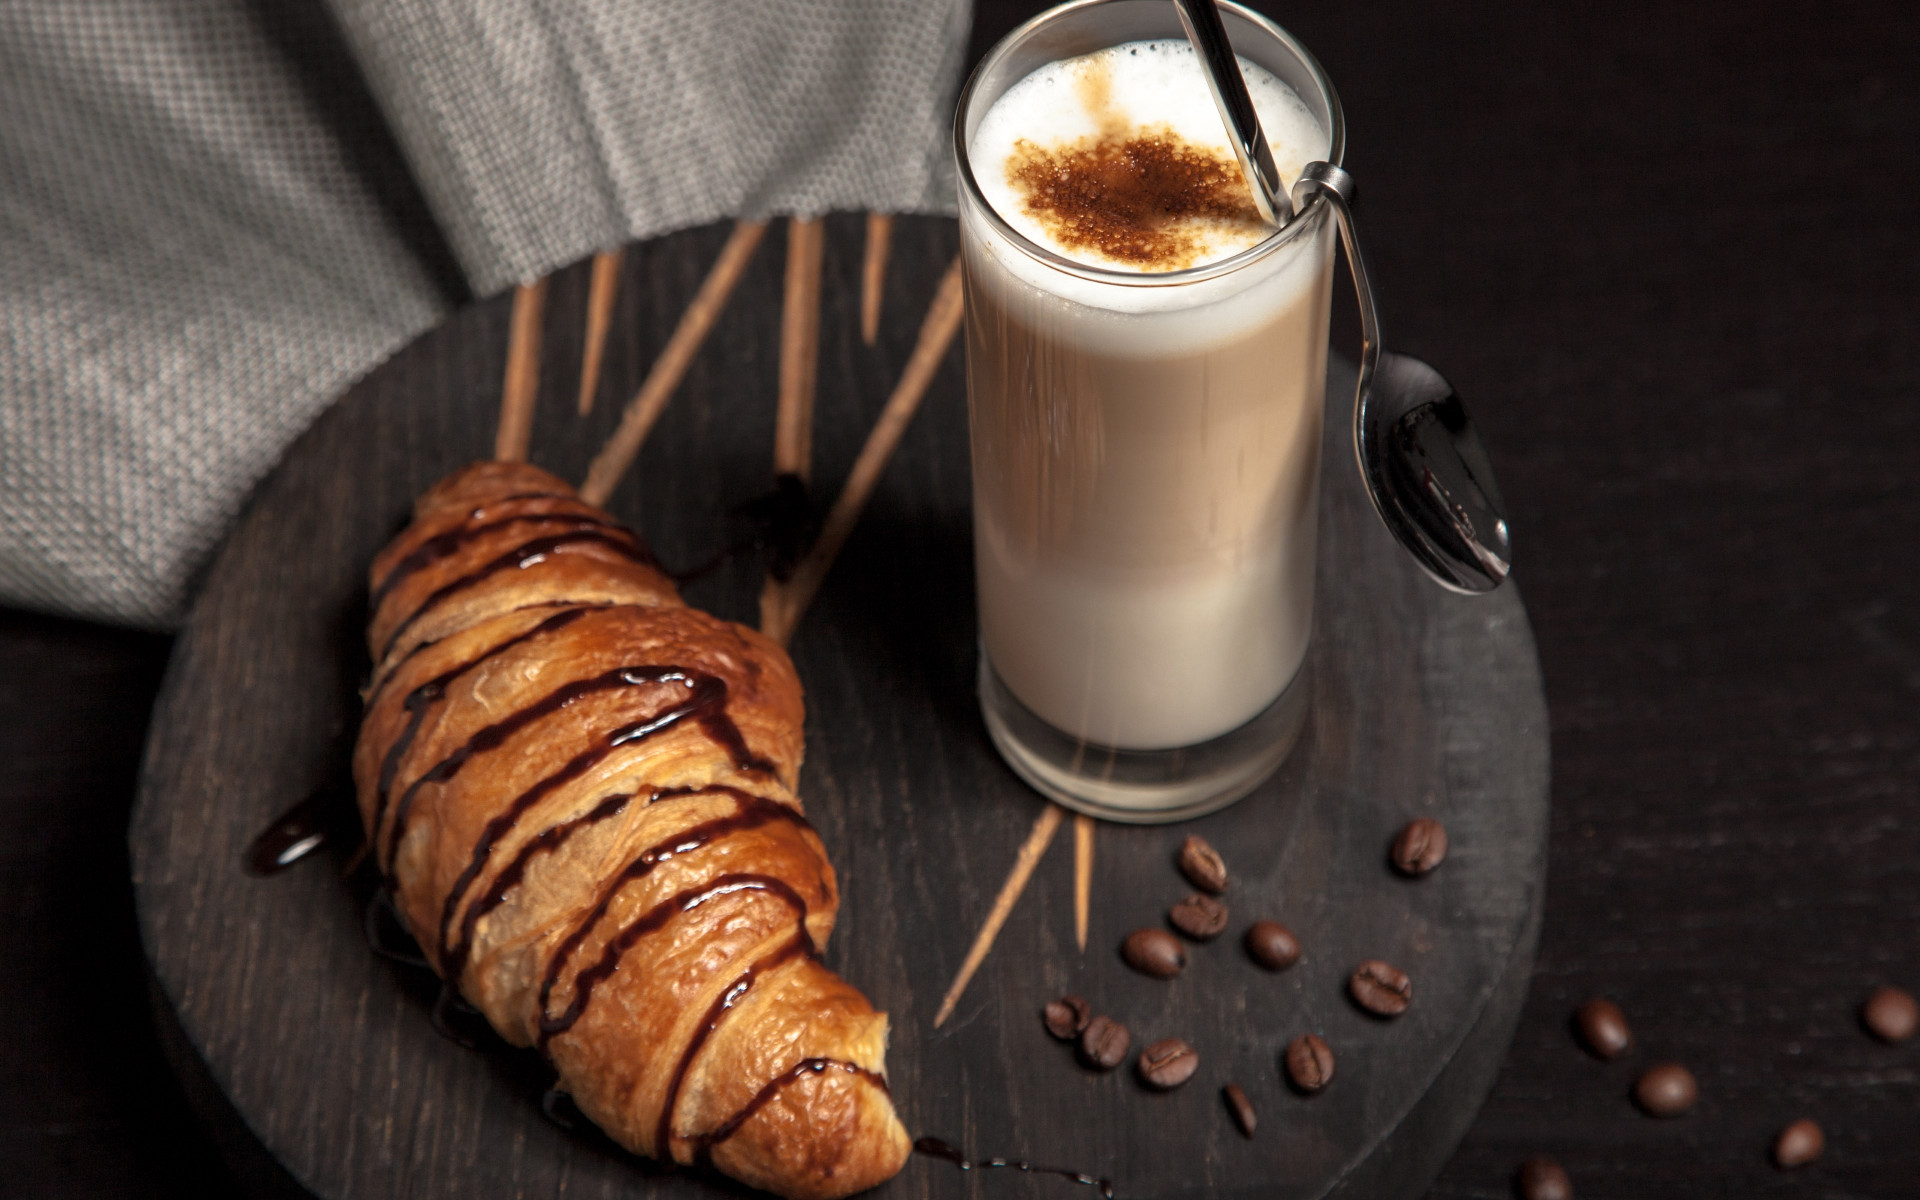 Cappuccino and chocolate croissant wallpaper 1920x1200